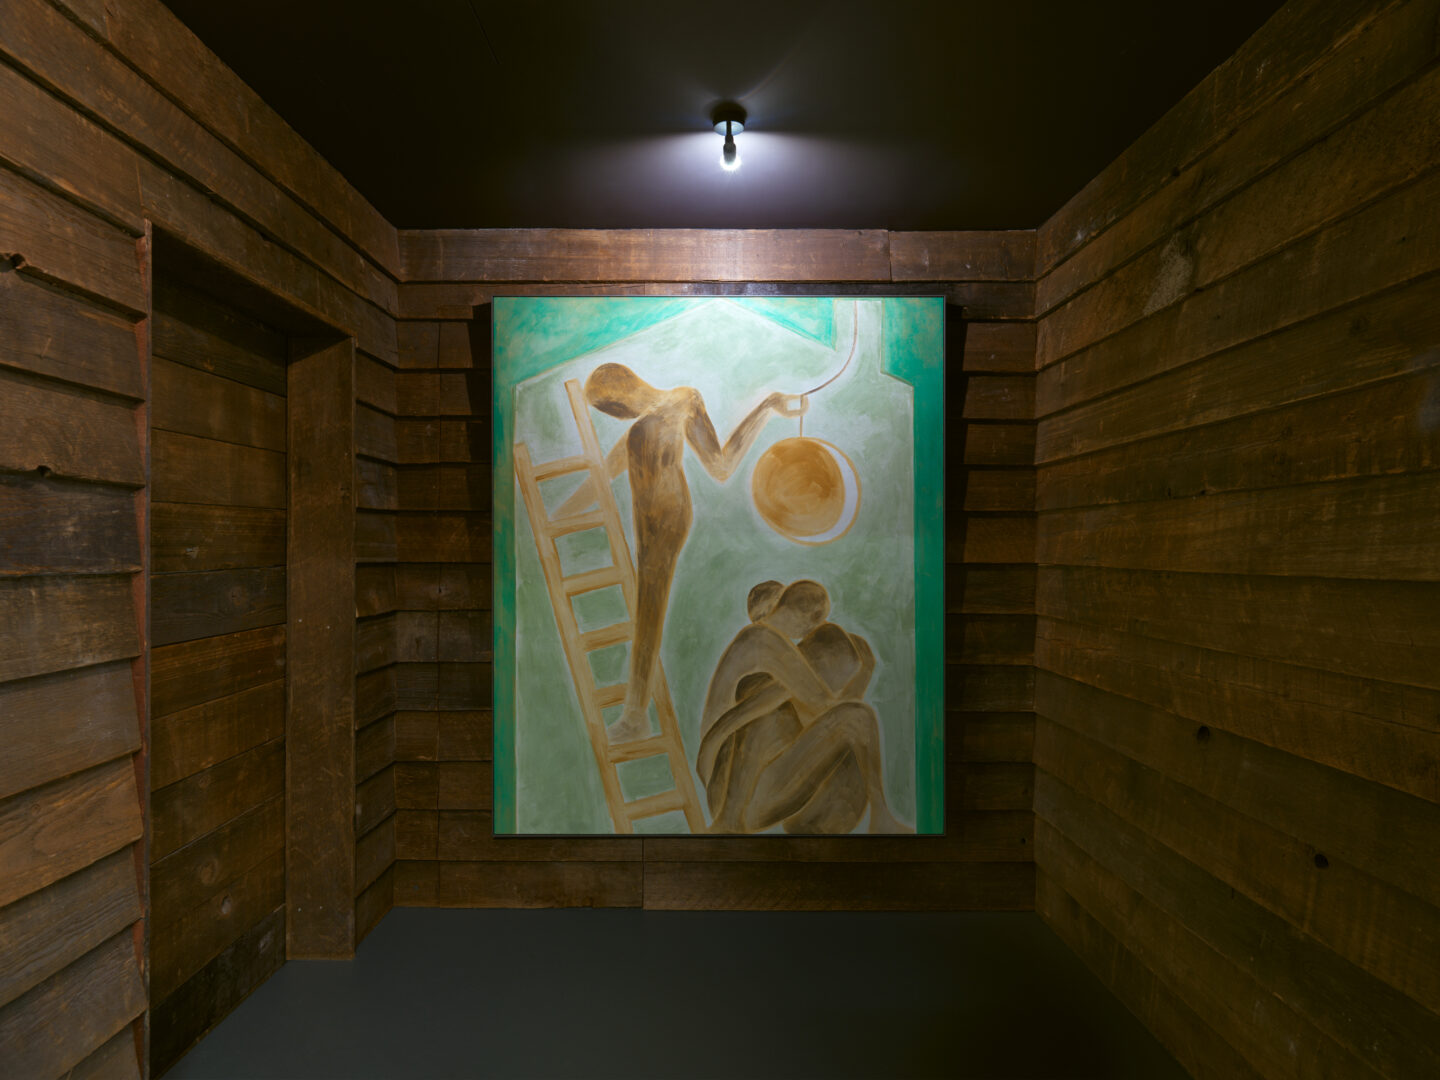 Exhibition View Francesco Clemente Soloshow «Clouds; view on Aspects of the Moon II, 2019» at Vito Schnabel Gallery, St. Moritz, 2019 / © Francesco Clemente / Photo by Stefan Altenburger / Courtesy: the artist and Vito Schnabel Gallery